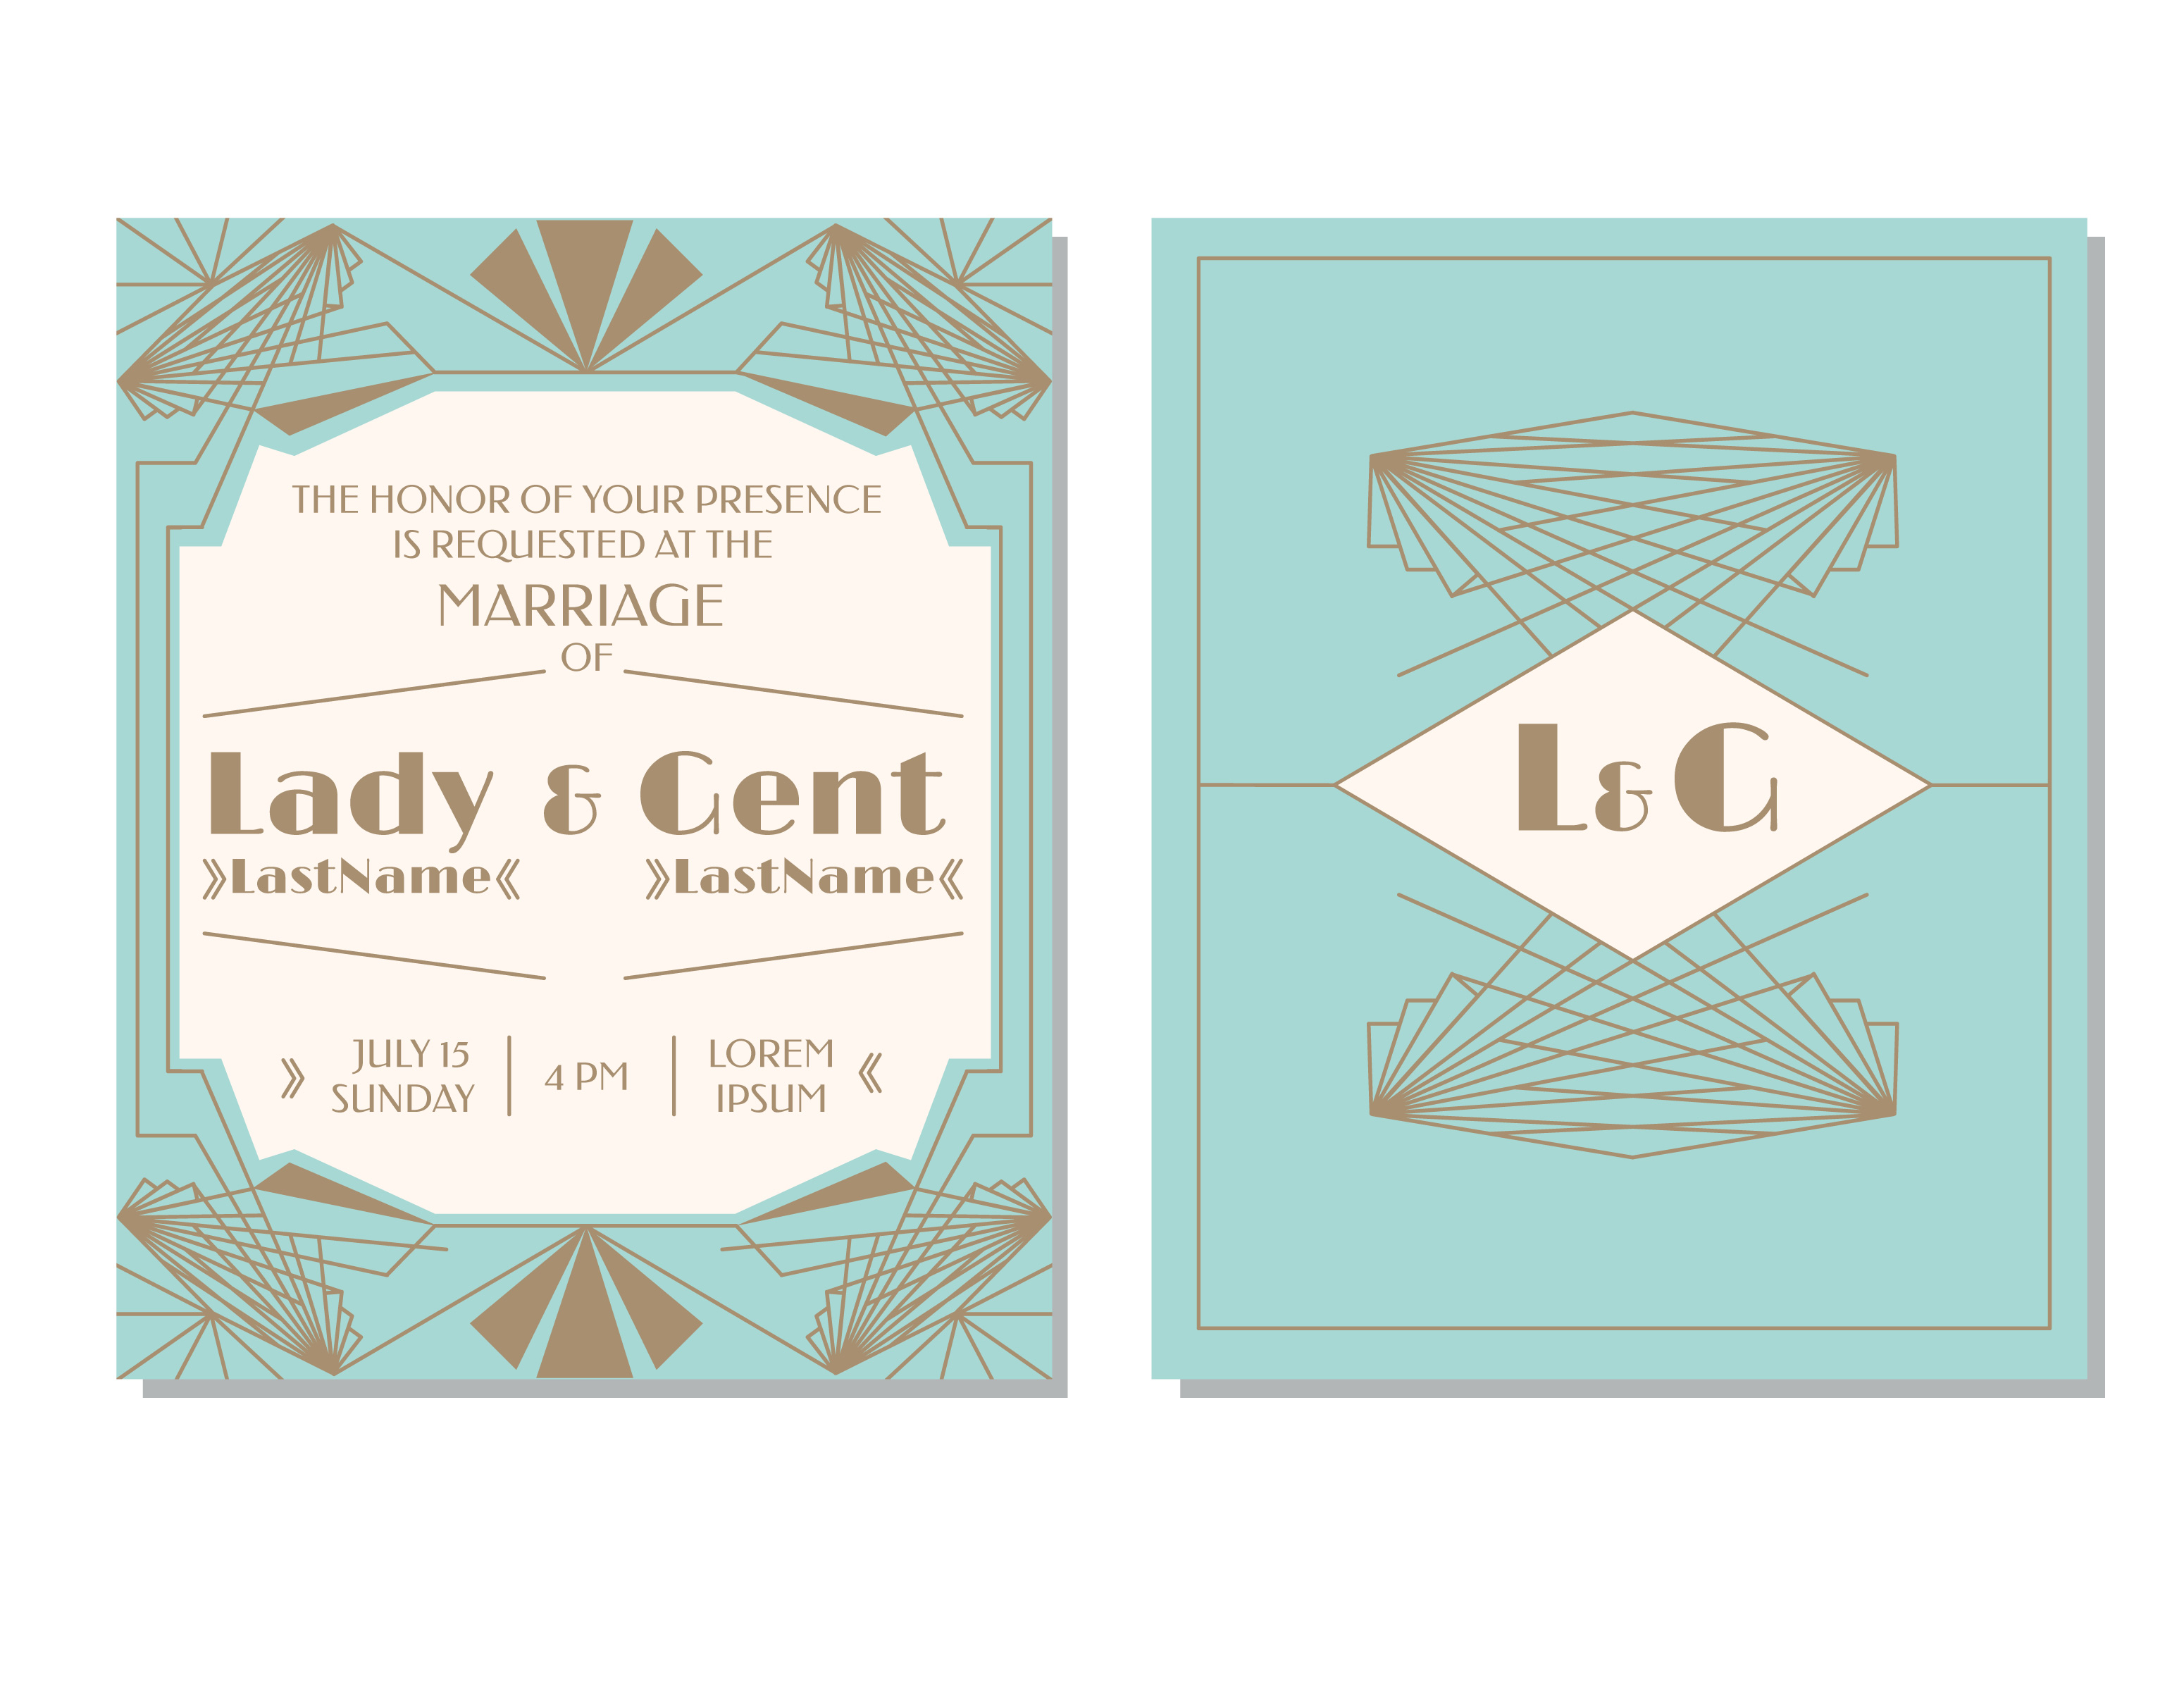 Invitation Card For Wedding Layout Art Deco Wedding Invitation Vector - Download Free Vector